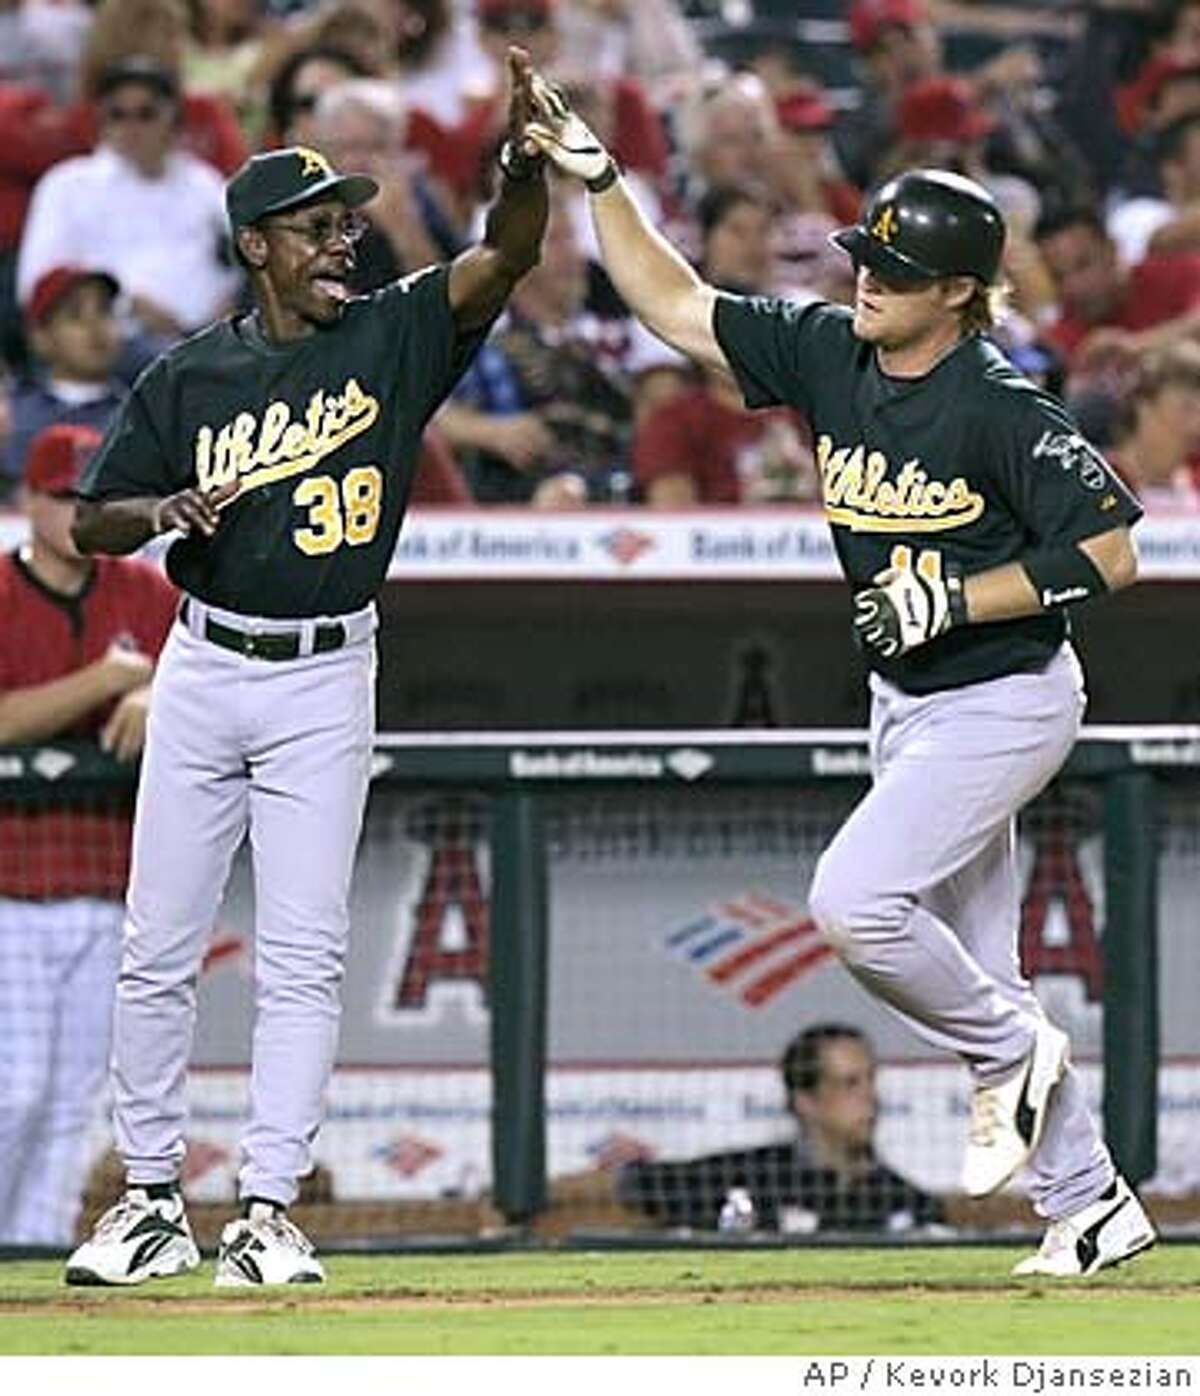 Oakland Atheltics' third base coach Ron Washington congratulates Dan Johnson after he hit a solo home run off Los Angeles Angels pitcher Jarrod Washburn during the seventh inning of the game Tuesday, July 19, 2005, in Anaheim, Calif. (AP Photo/Kevork Djansezian) Ran on: 07-20-2005 Rich Harden wasnt perfect, but he was more than good enough as he took a shutout into the ninth inning in Anaheim. Ran on: 07-20-2005 Rich Harden wasnt perfect, but he was more than good enough as he took a shutout into the ninth inning in Anaheim.